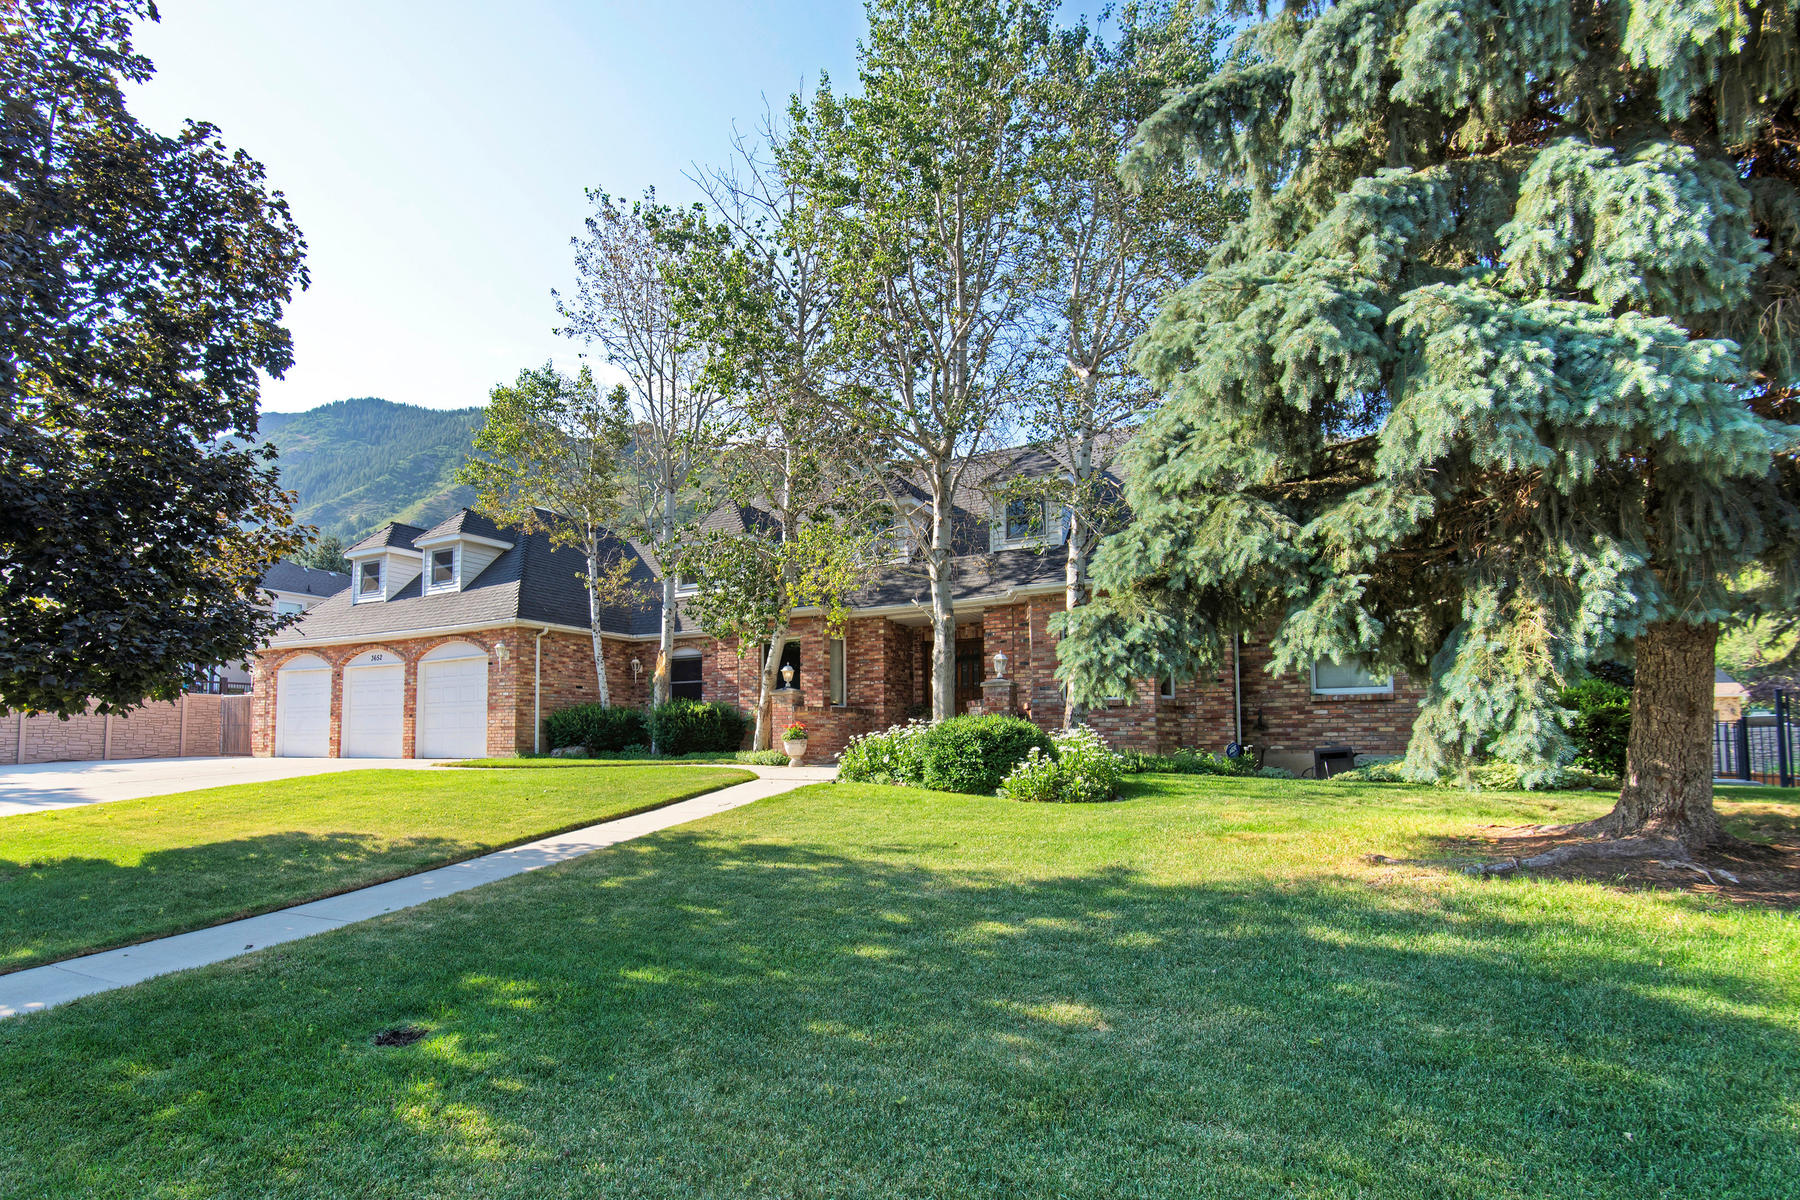 Additional photo for property listing at Charming Two Story with a Flair of Country. 3652 E Little Cottonwood Ln Sandy, Utah 84092 United States